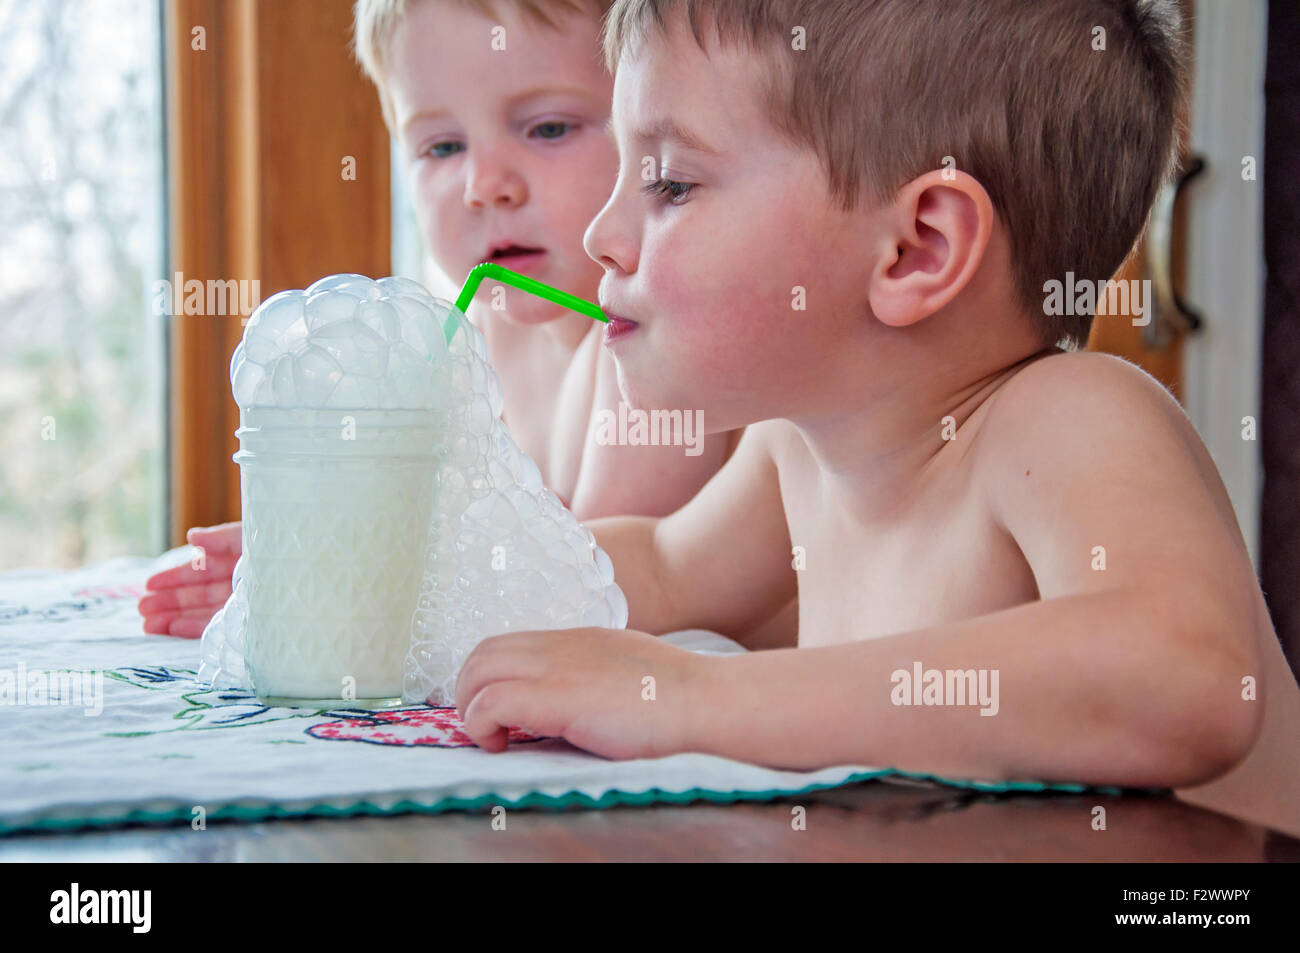 Boy blowing milk bubbles in a glass through straw - Stock Image